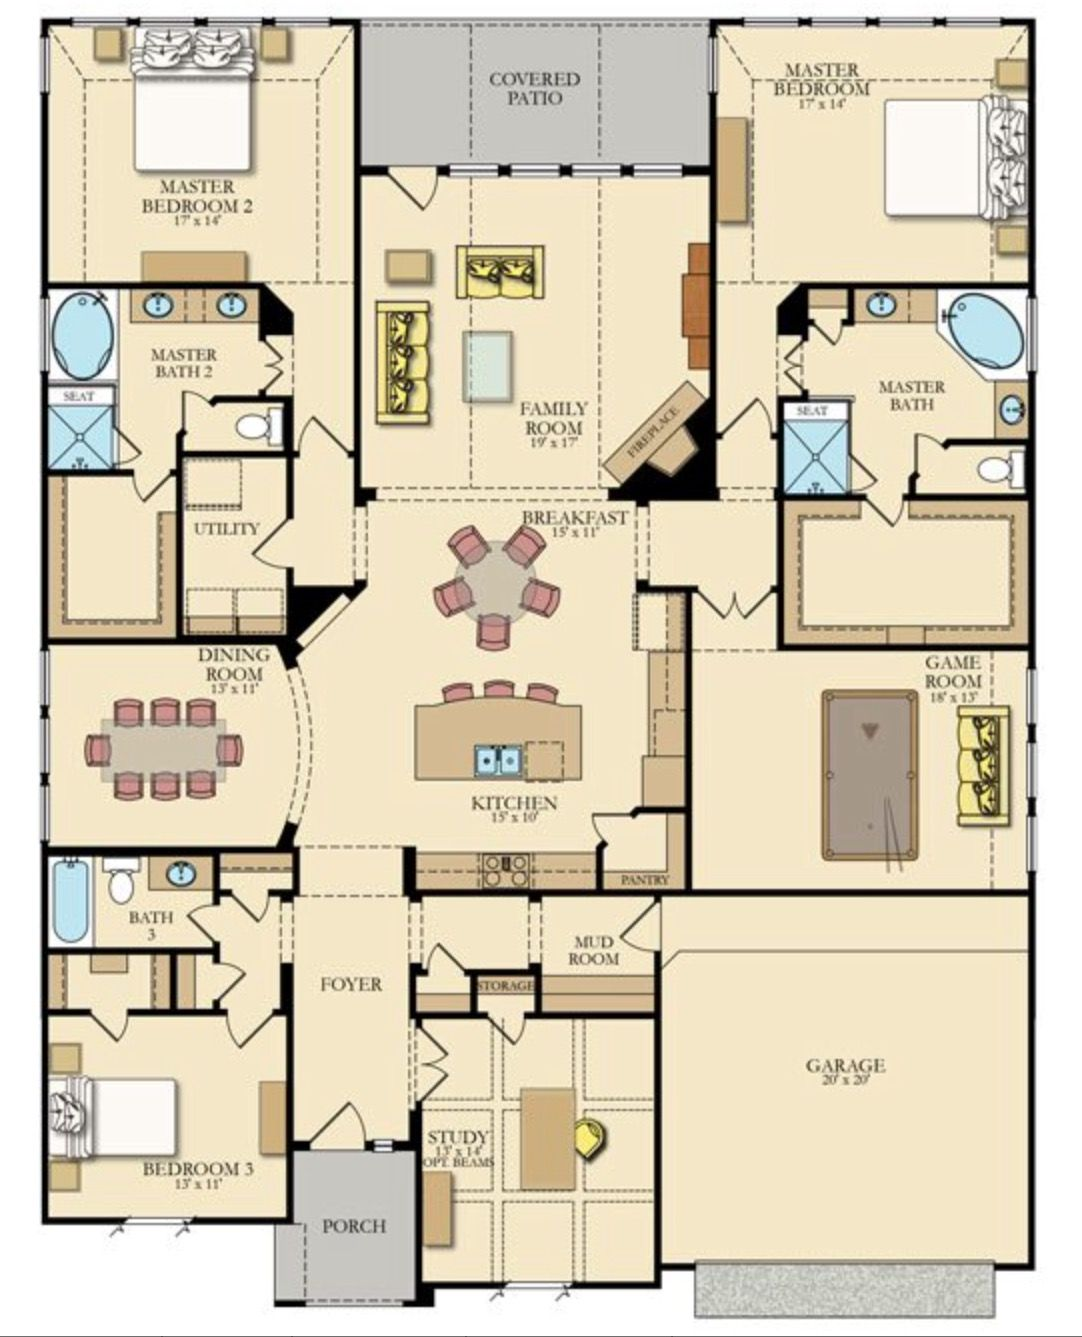 Lennar Diamond Plan 3148 Sq Ft 350 000 2 Master Bedrooms New House Plans House Plans Sims House Design